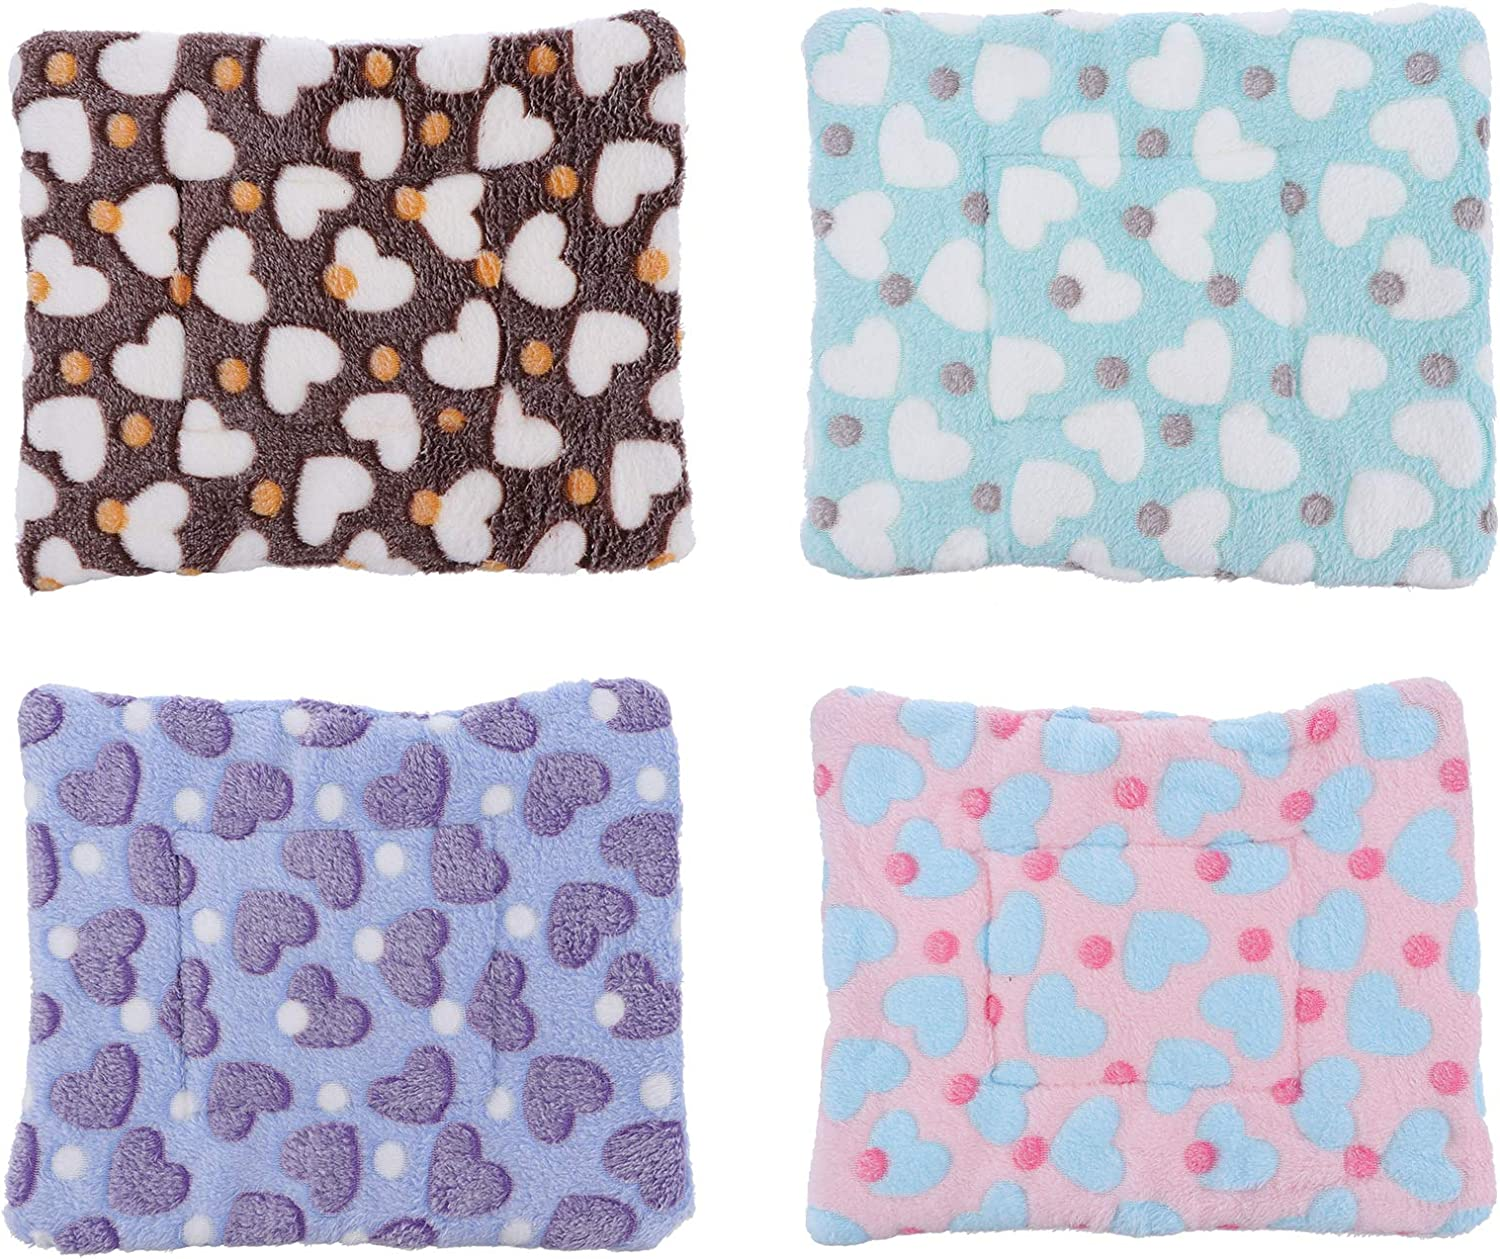 TEHAUX 4pcs Guinea Pig Bed Small P Soft Selling and selling Fleece Animals Sleep Mat Daily bargain sale